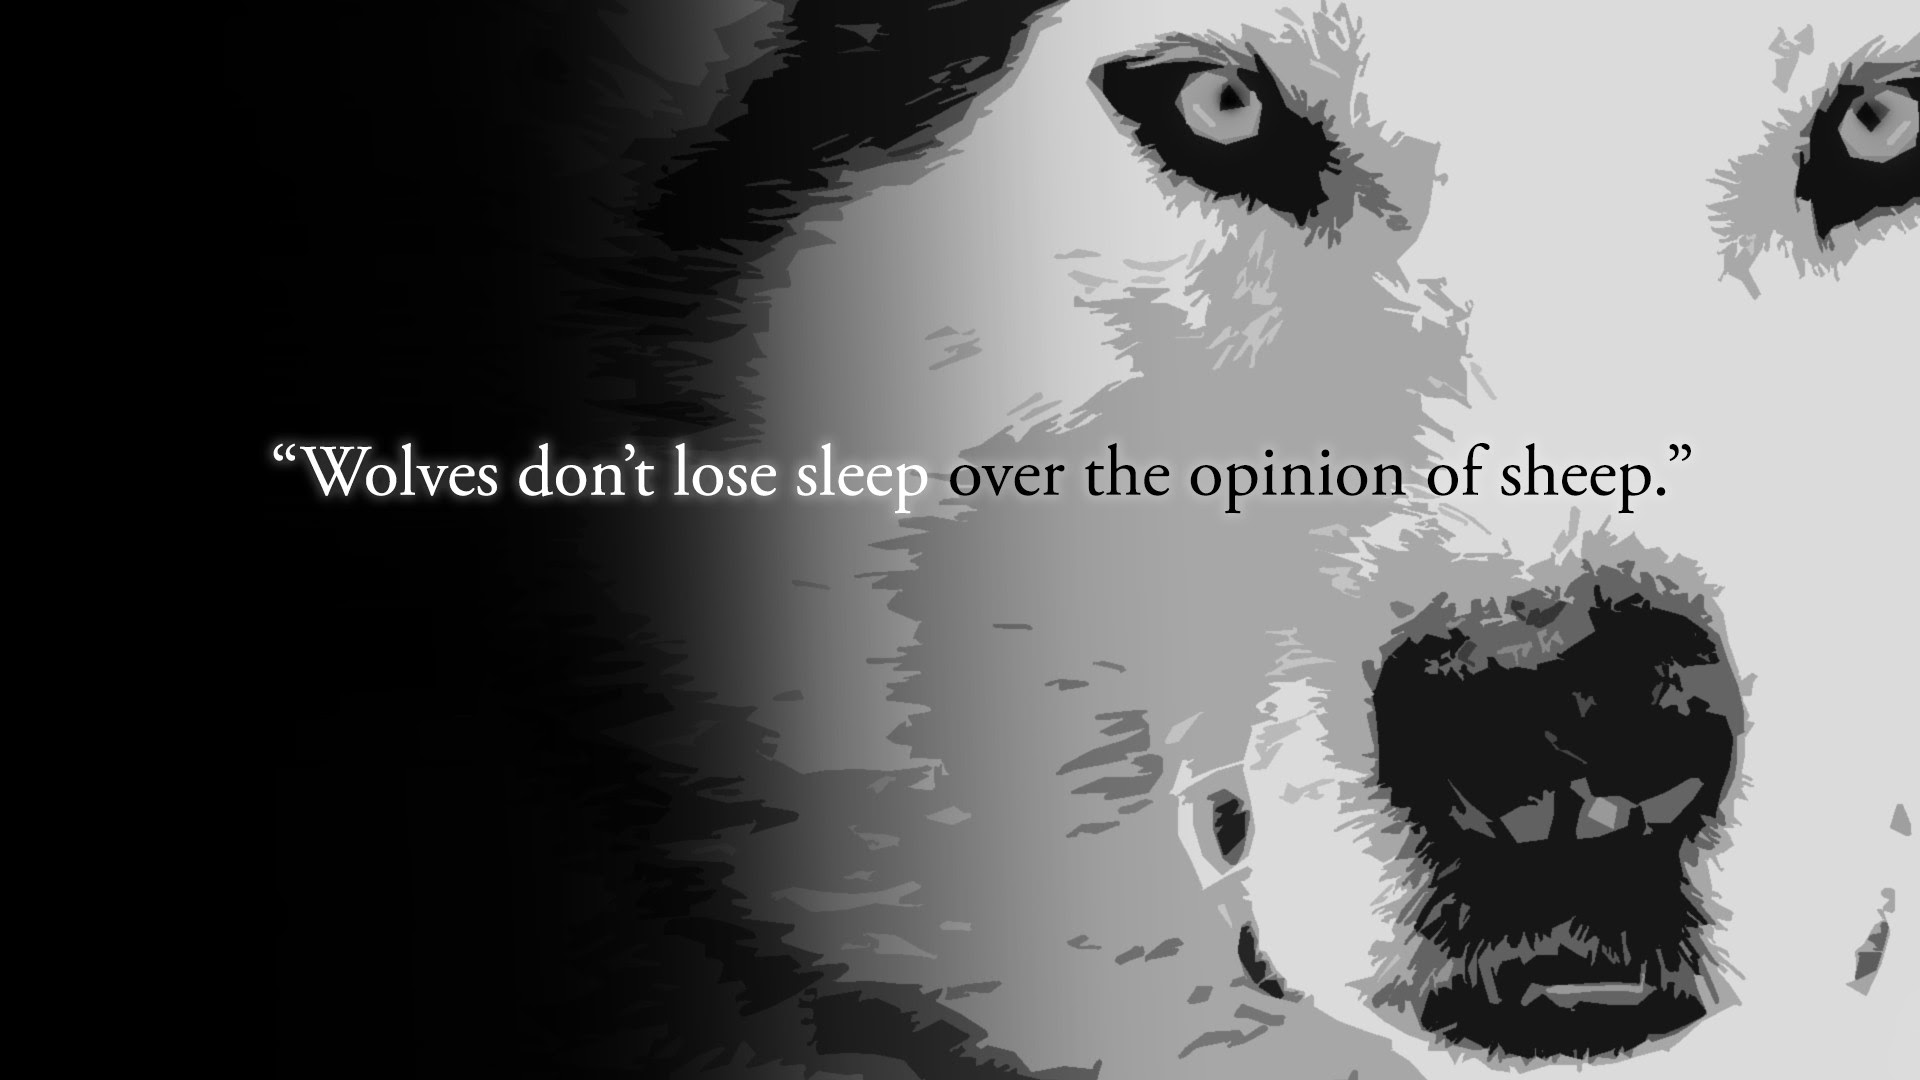 Wolves Dont Lose Sleep Over The Opinion Of Sheep 1920x1080